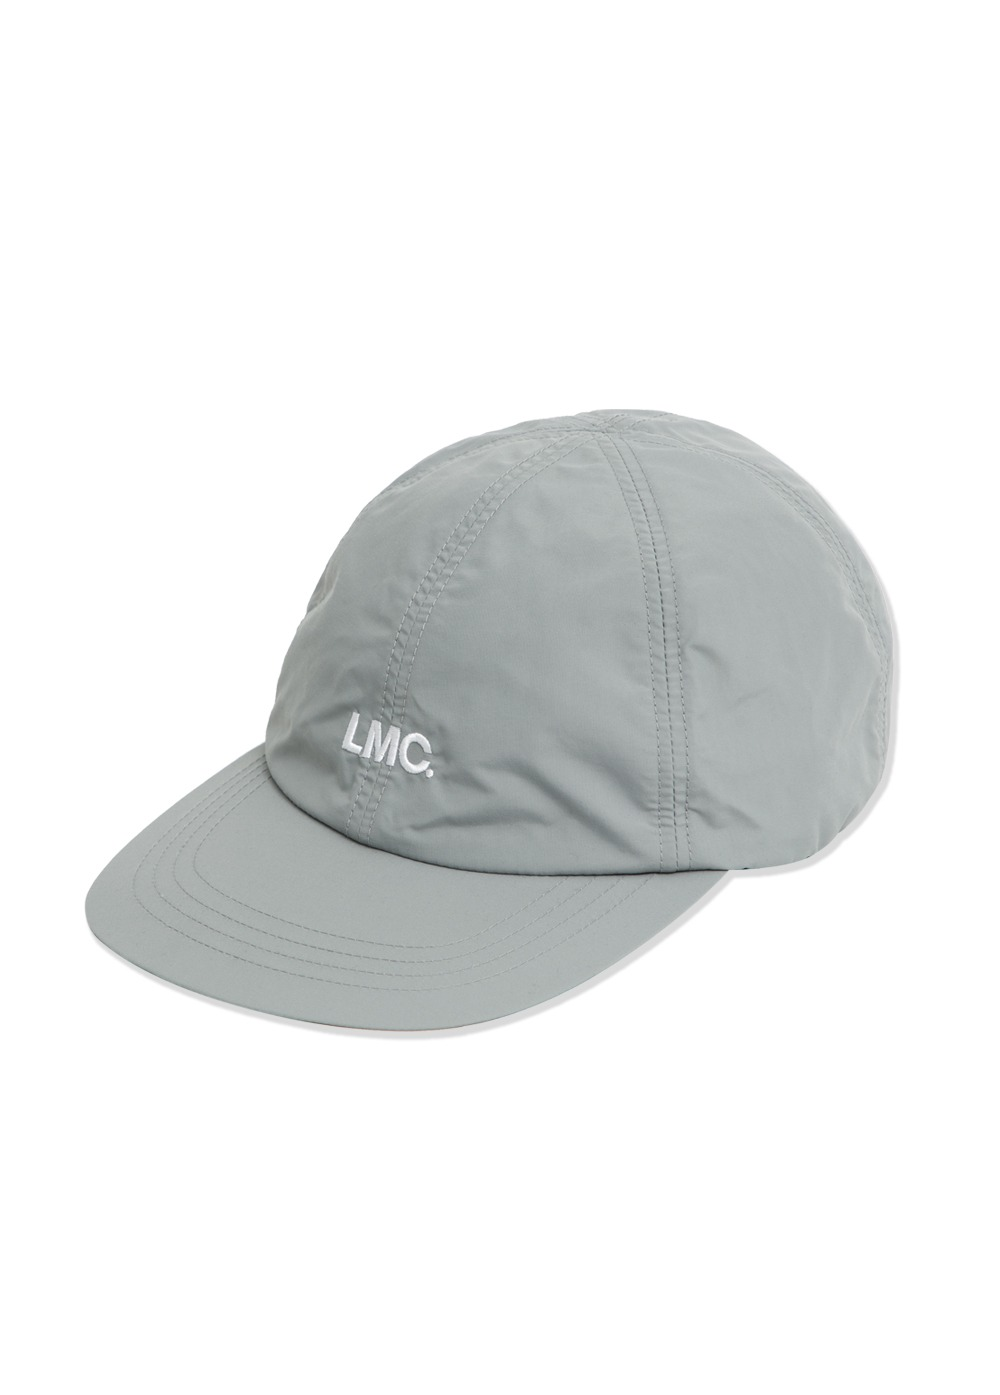 LMC NYLON OG 6 PANEL CAP gray